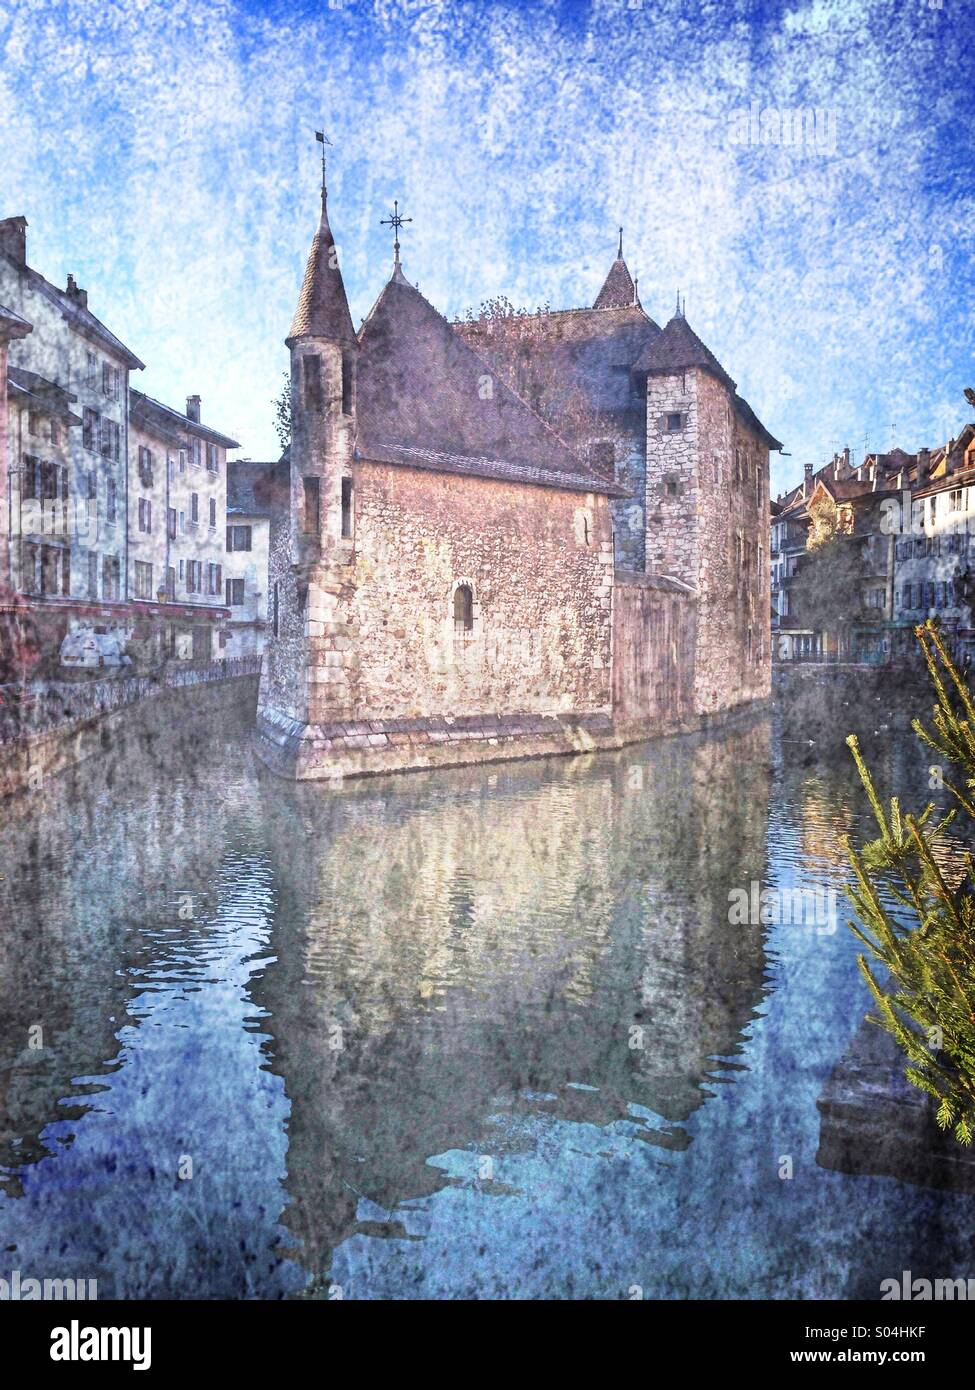 Mystical church and prison, Annecy,France - Stock Image